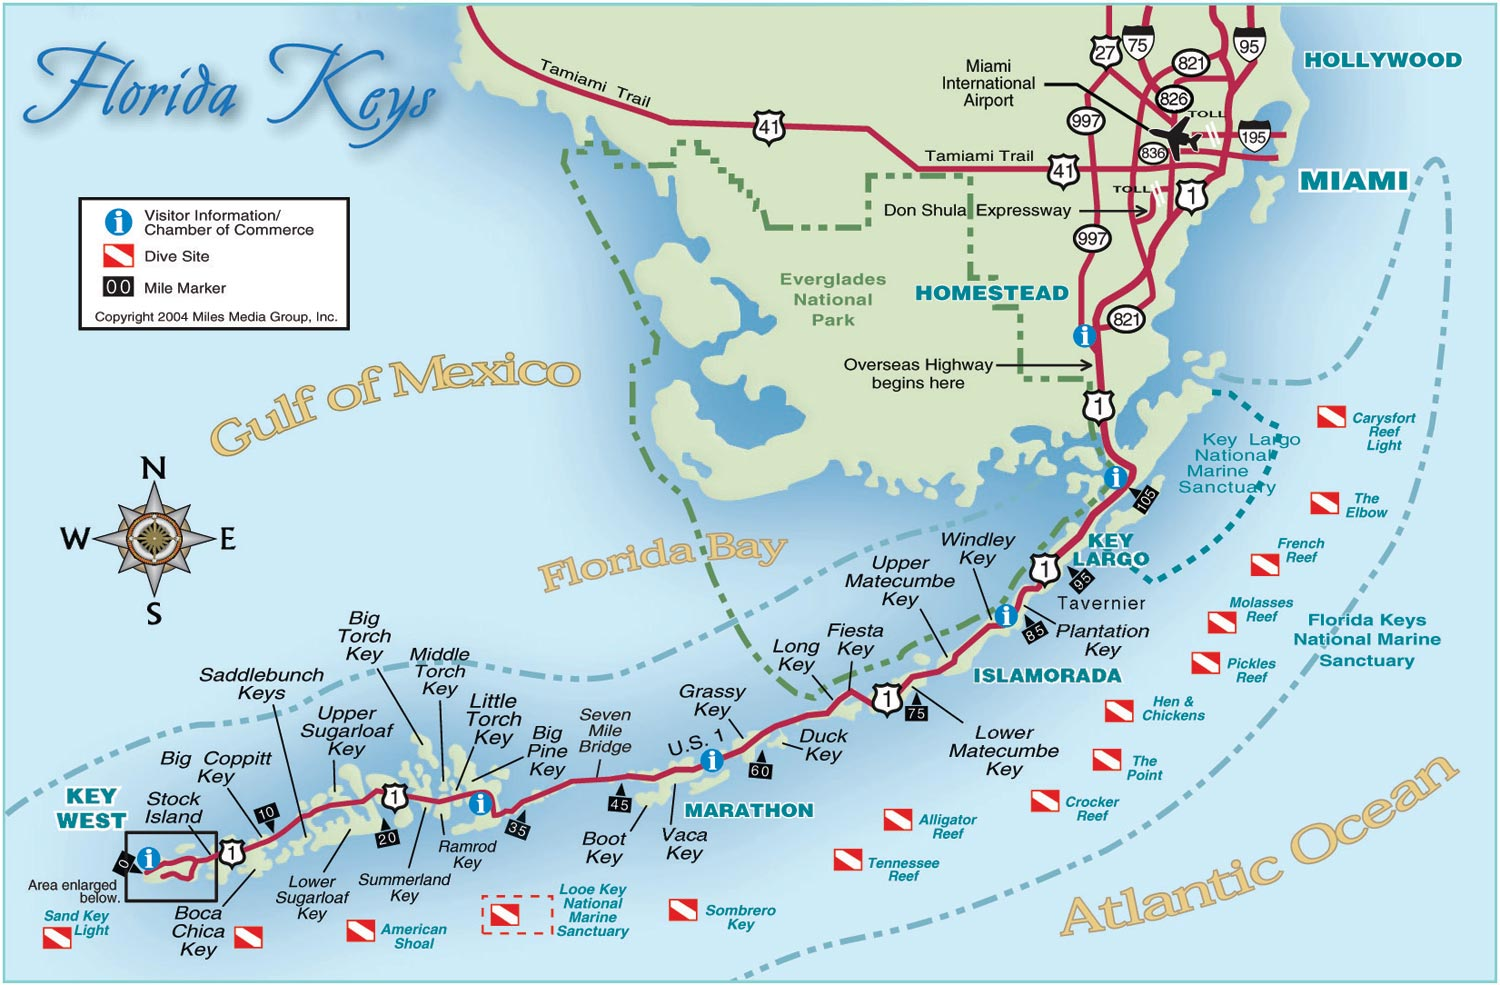 the florida keys real estate conchquistador keys map